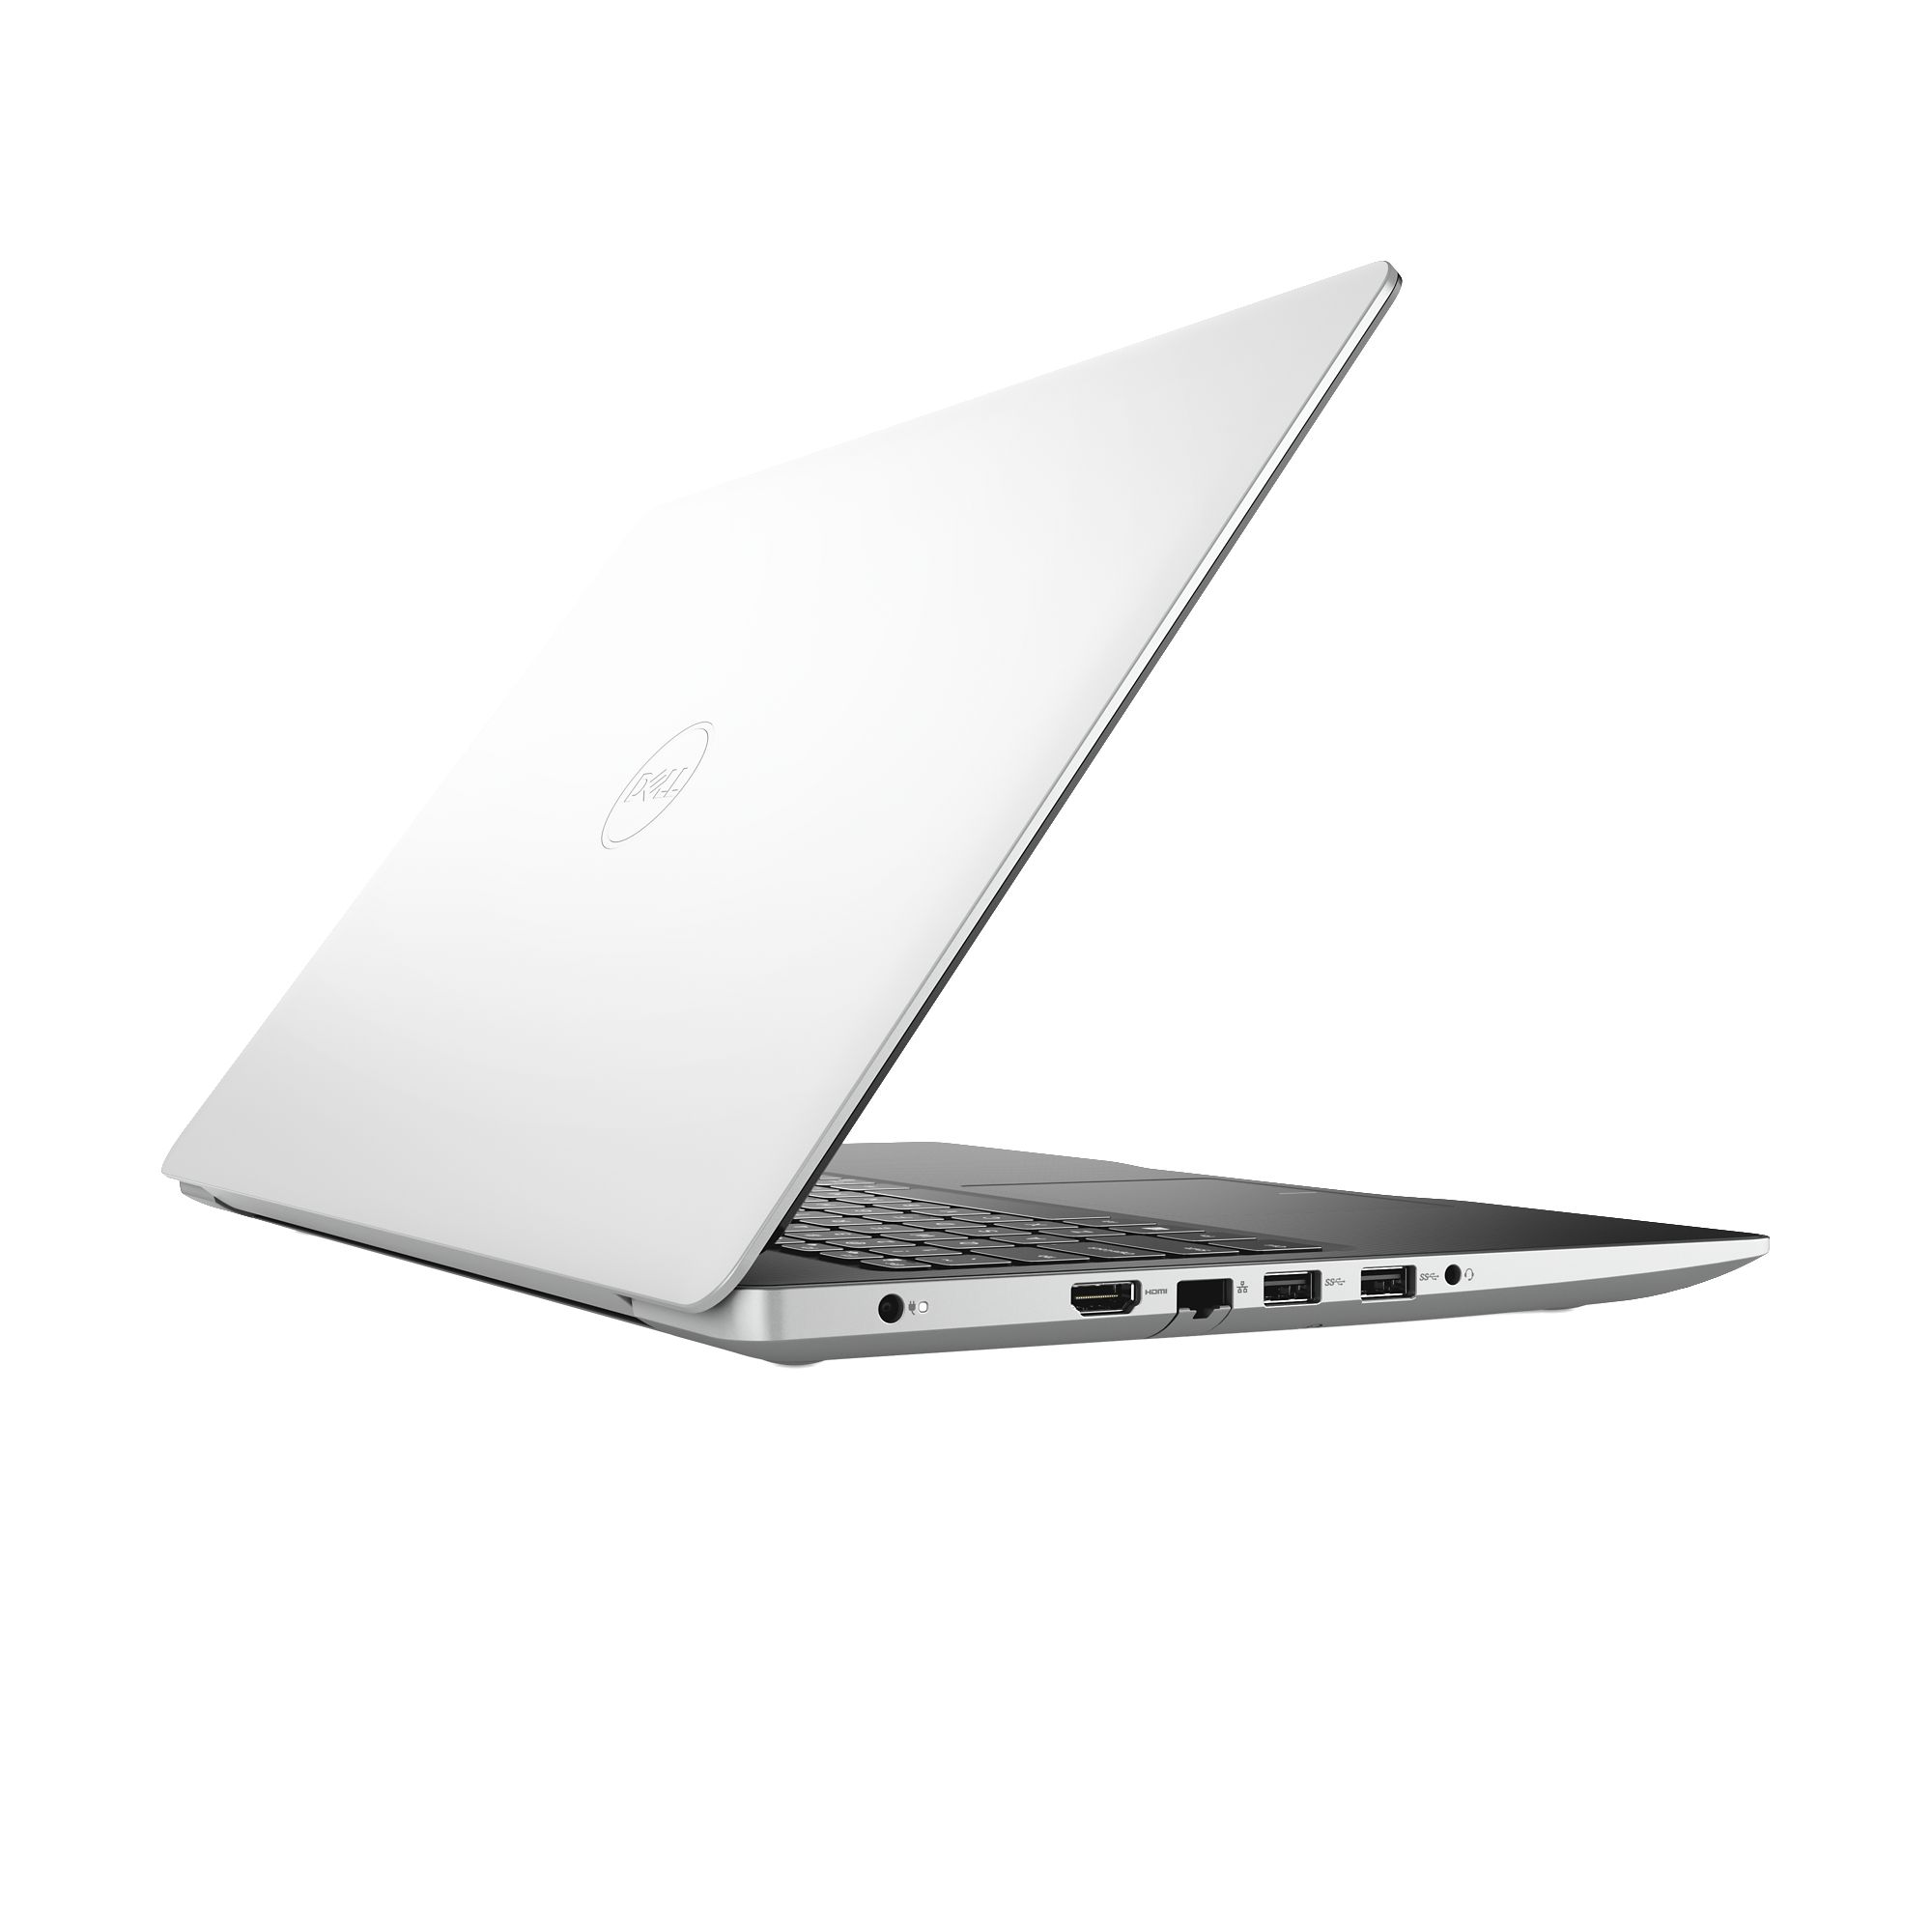 Dell Inspiron 15 3000 Series (Model 3580)